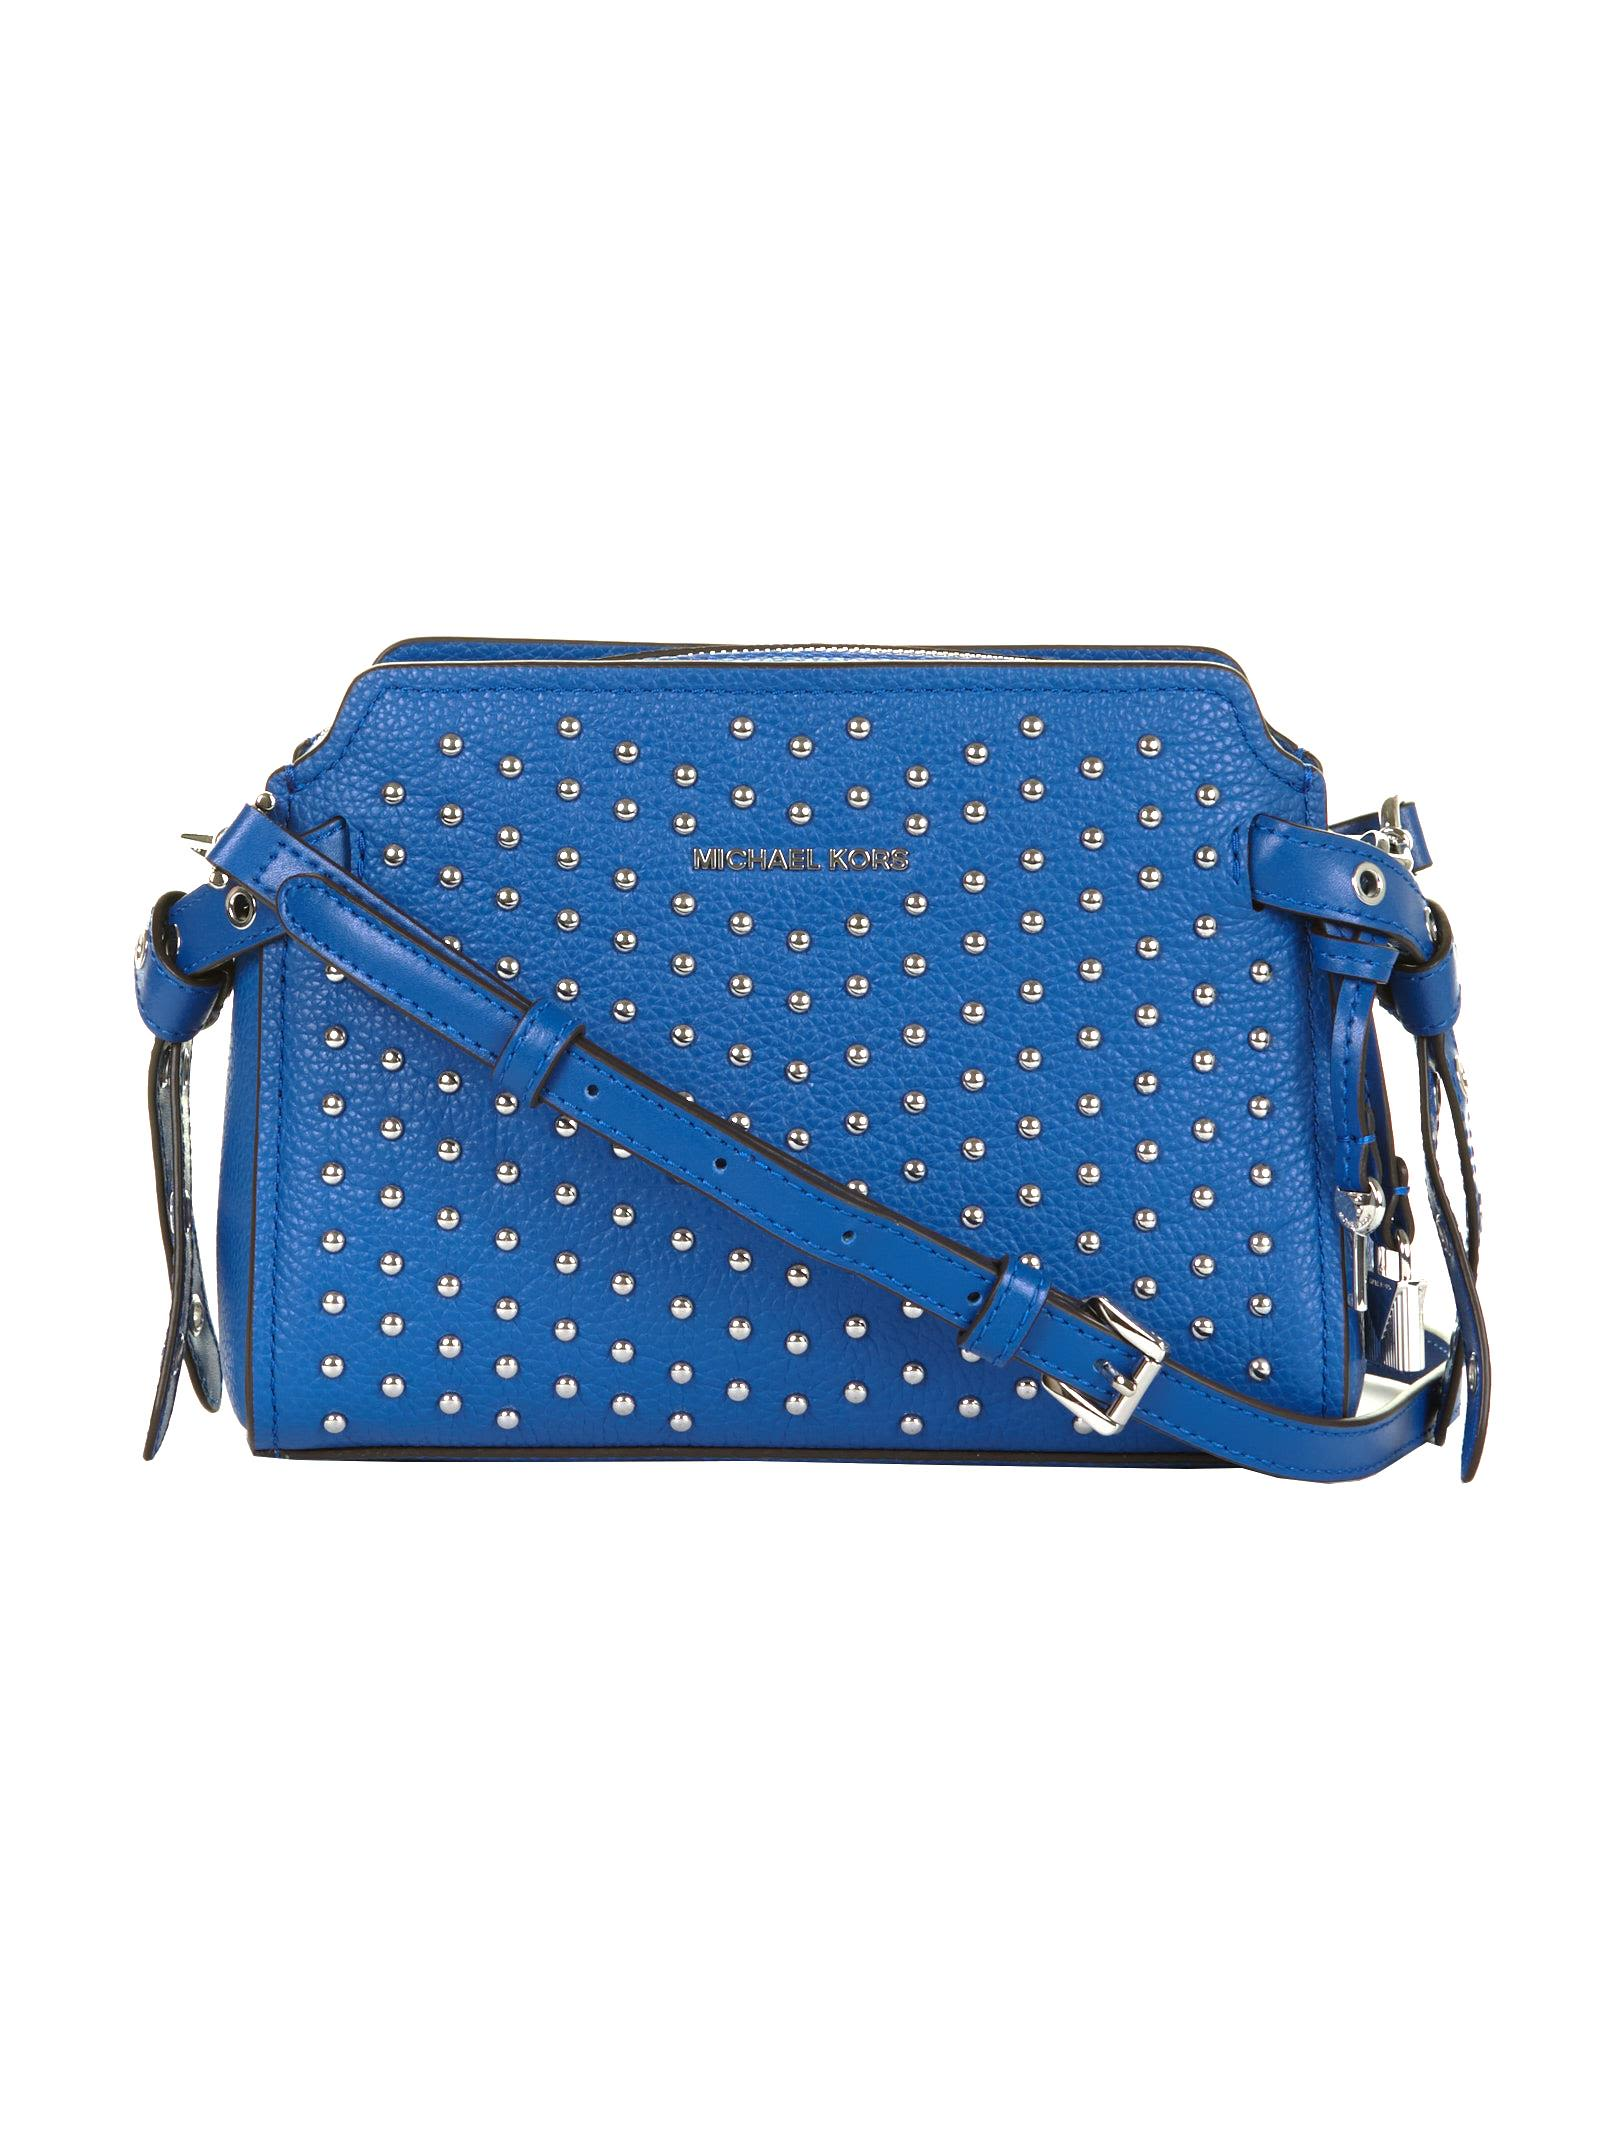 Michael Kors Bristol Studded Messenger Bag